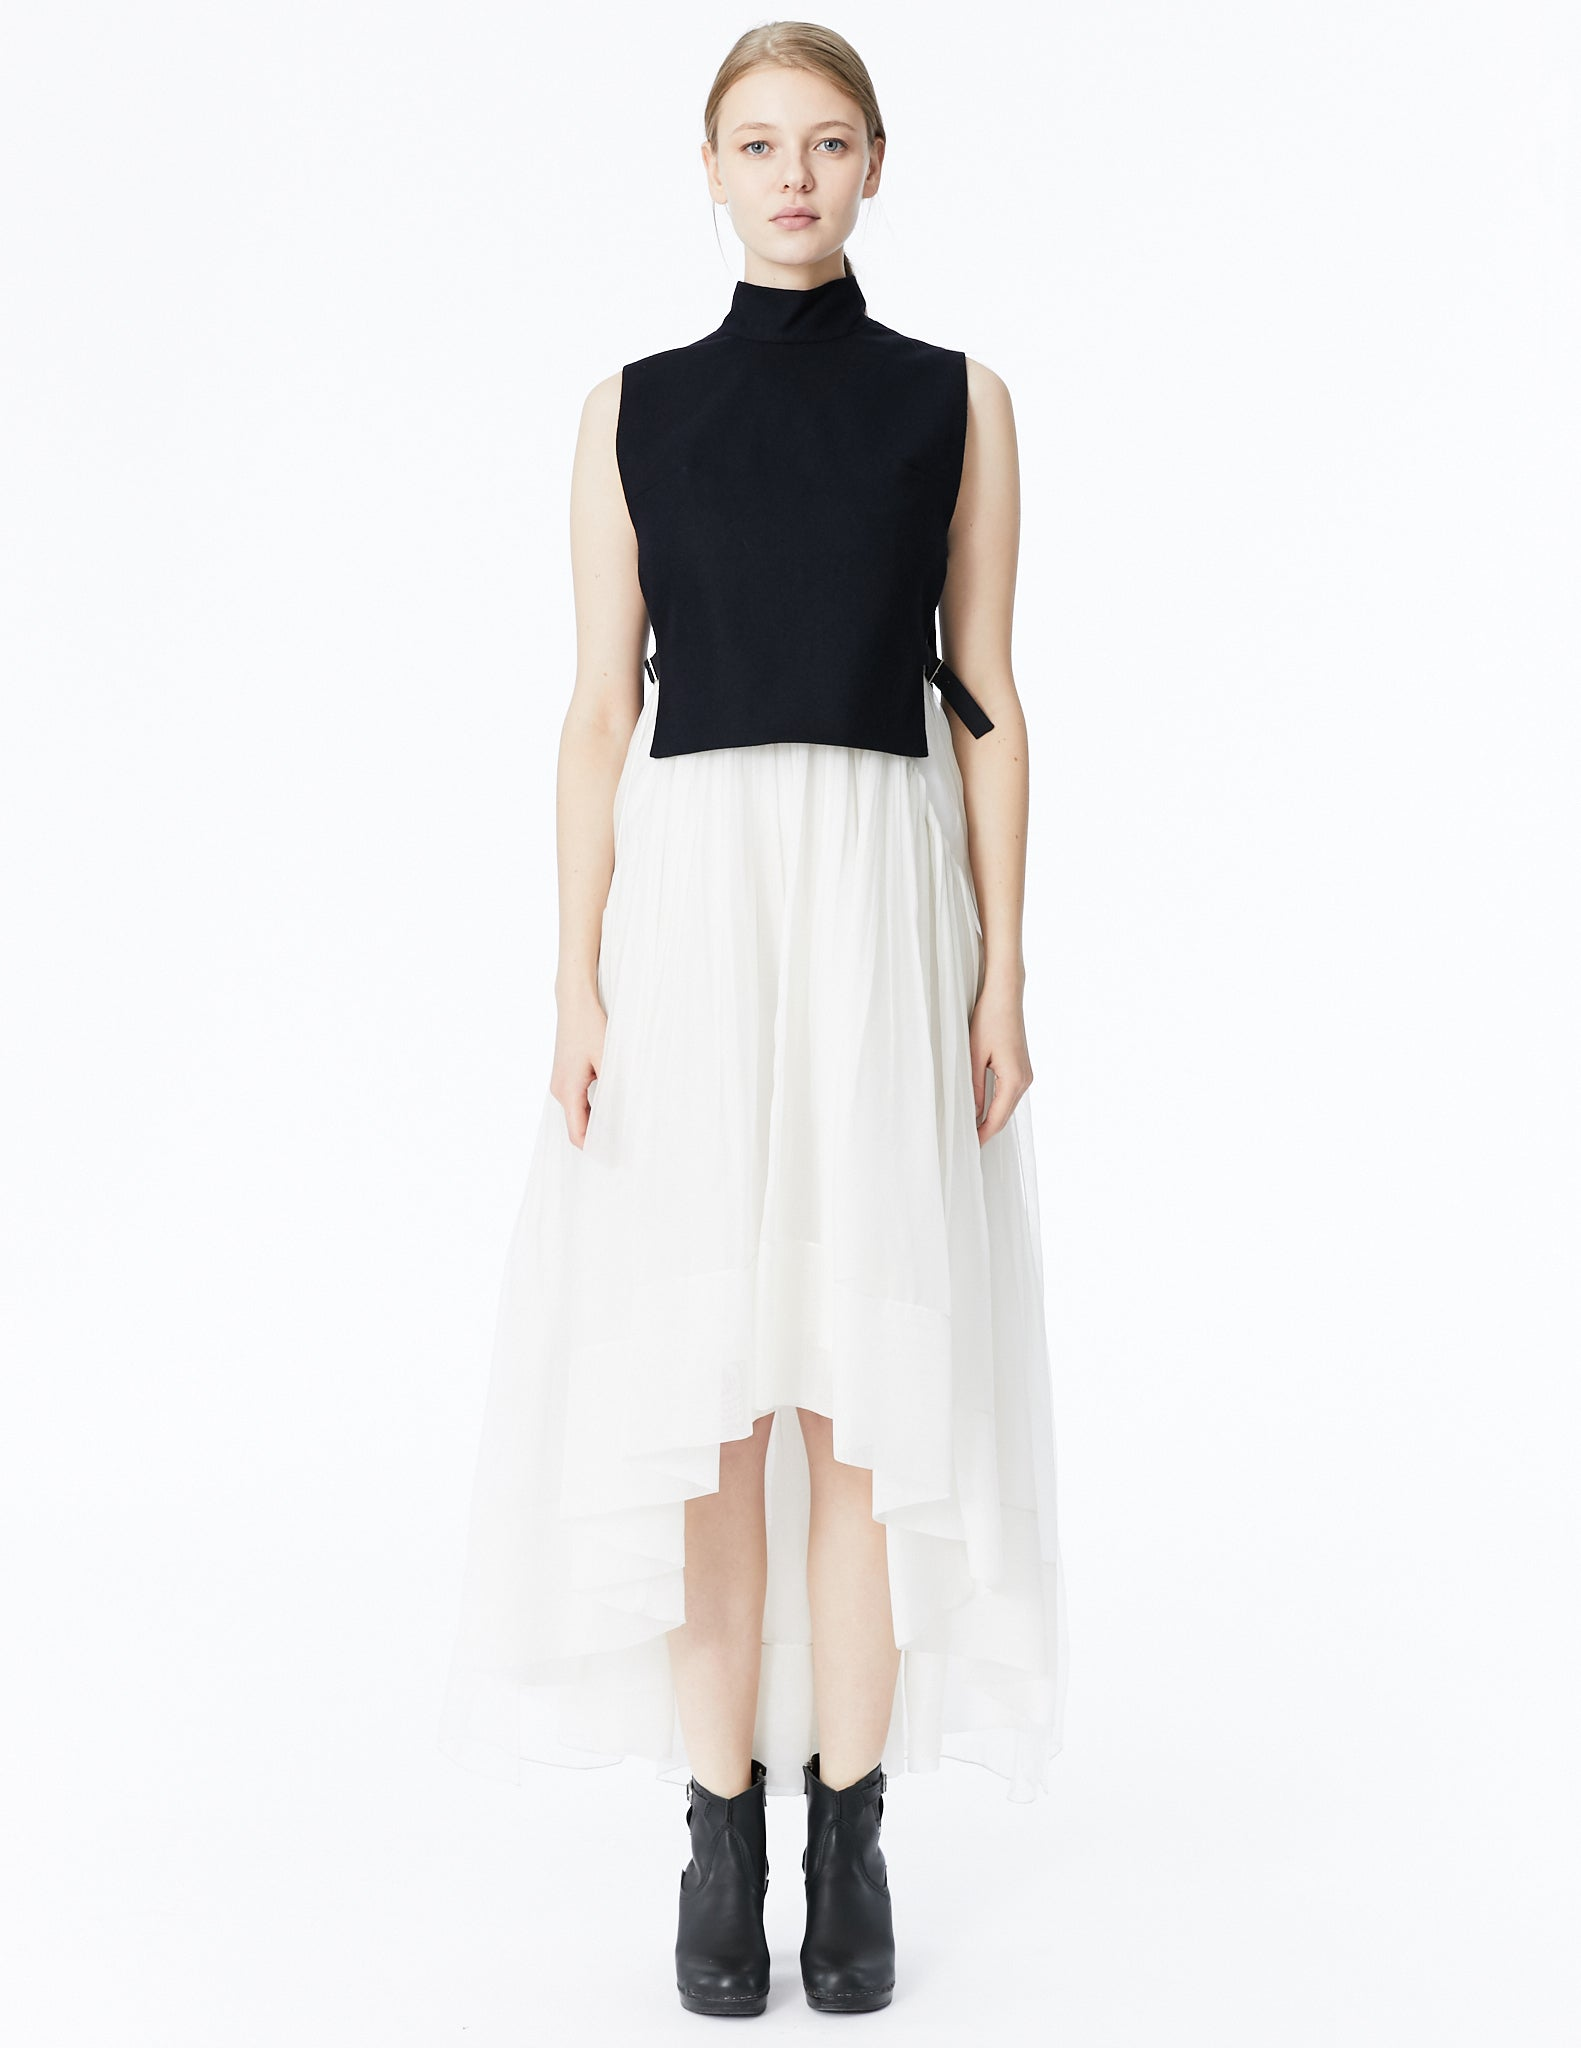 morgane le fay cropped vest with high collar and adjustable side buckles